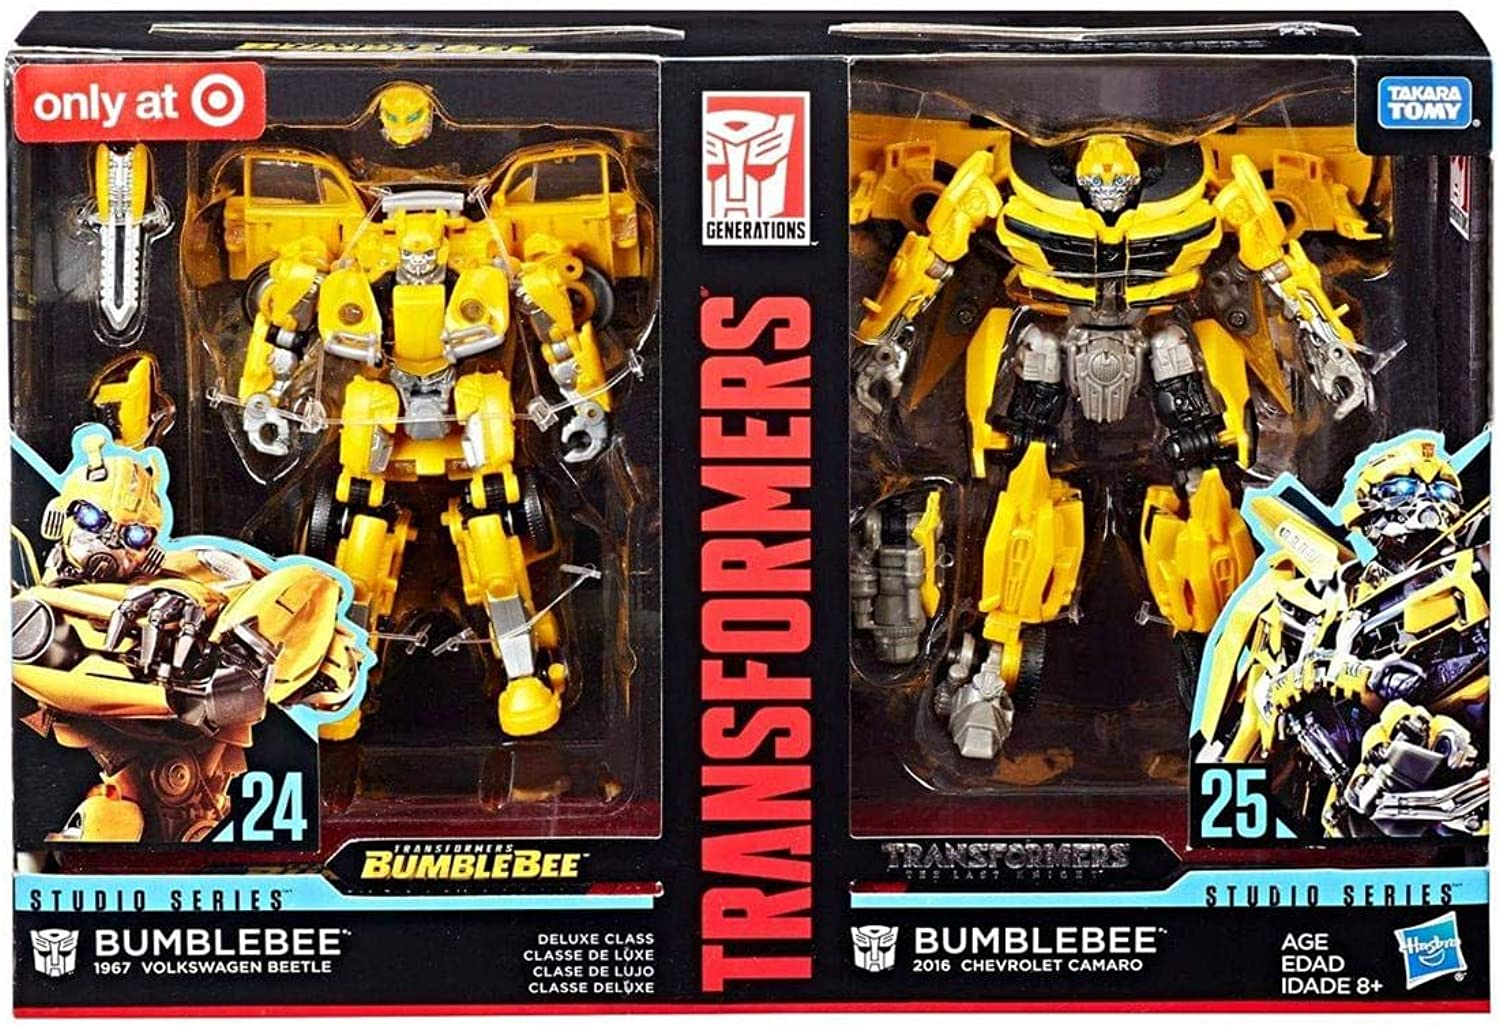 Transformers Studio Series 24 and 25 Deluxe Class Bumblebee 2pack Including 1967 Volkswagen Beetle Bumblebee Movie Version and 2016 Chevrolet Camaro The Last Knight Movie Version